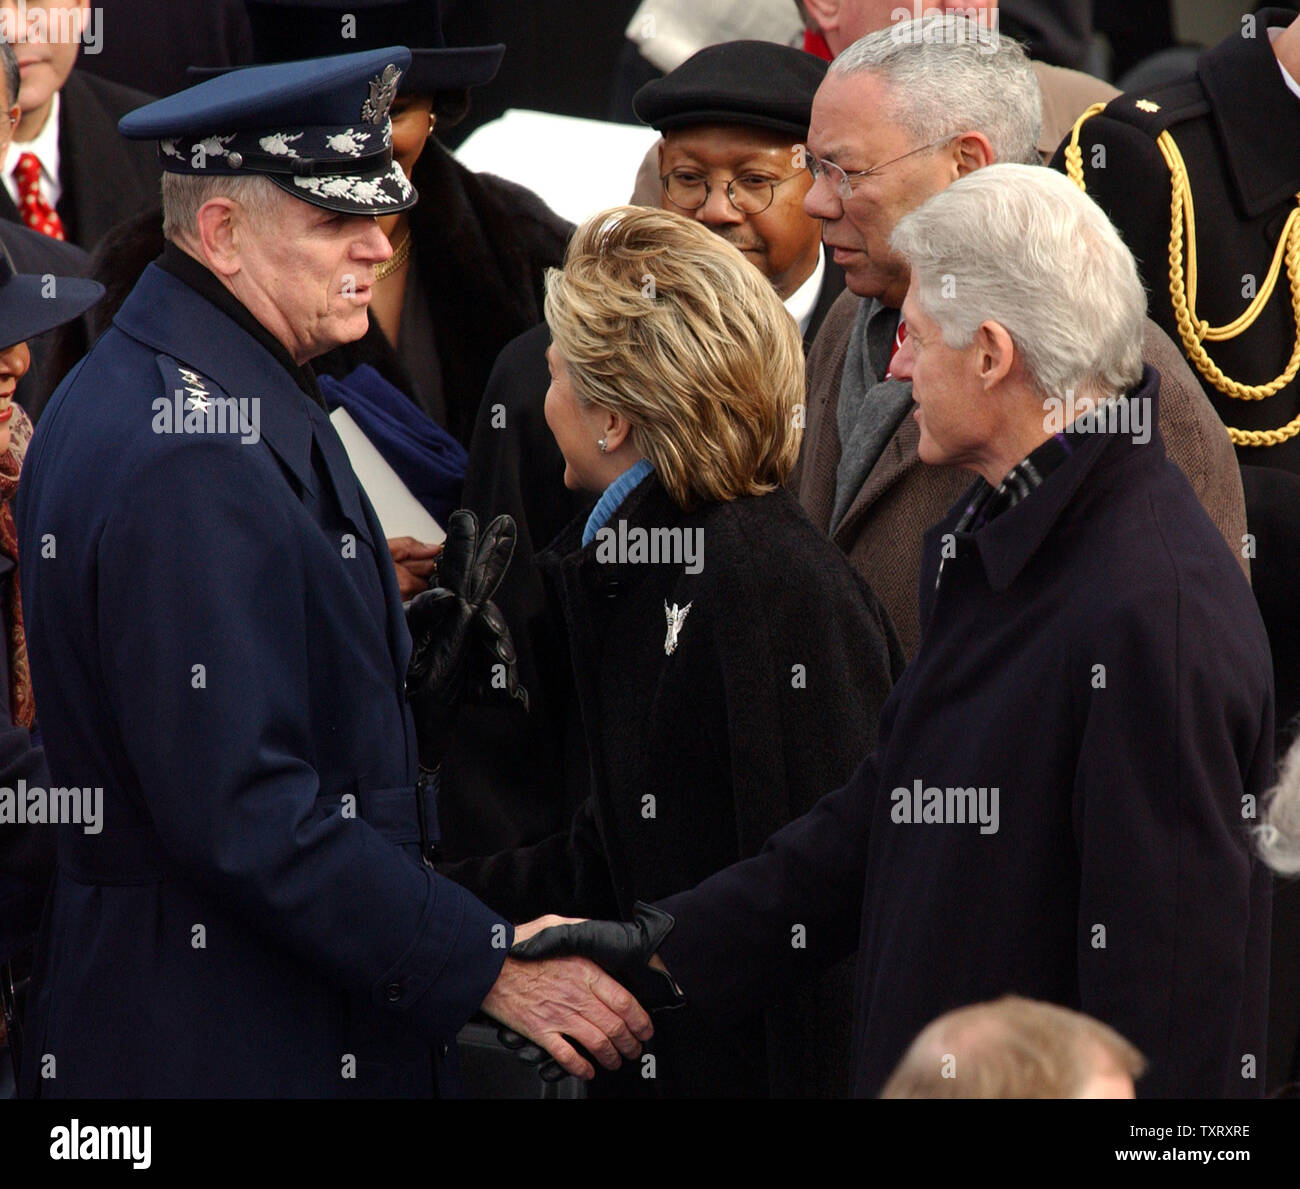 Former President Bill Clinton shakes hands with Chairman of the Joint Chiefs of Staff Richard B. Myers as they arrive for President George W. Bush's second inaugural ceremony on Capitol Hill in Washington on Jan. 20, 2005.   (UPI Photo/Roger L. Wollenberg) - Stock Image